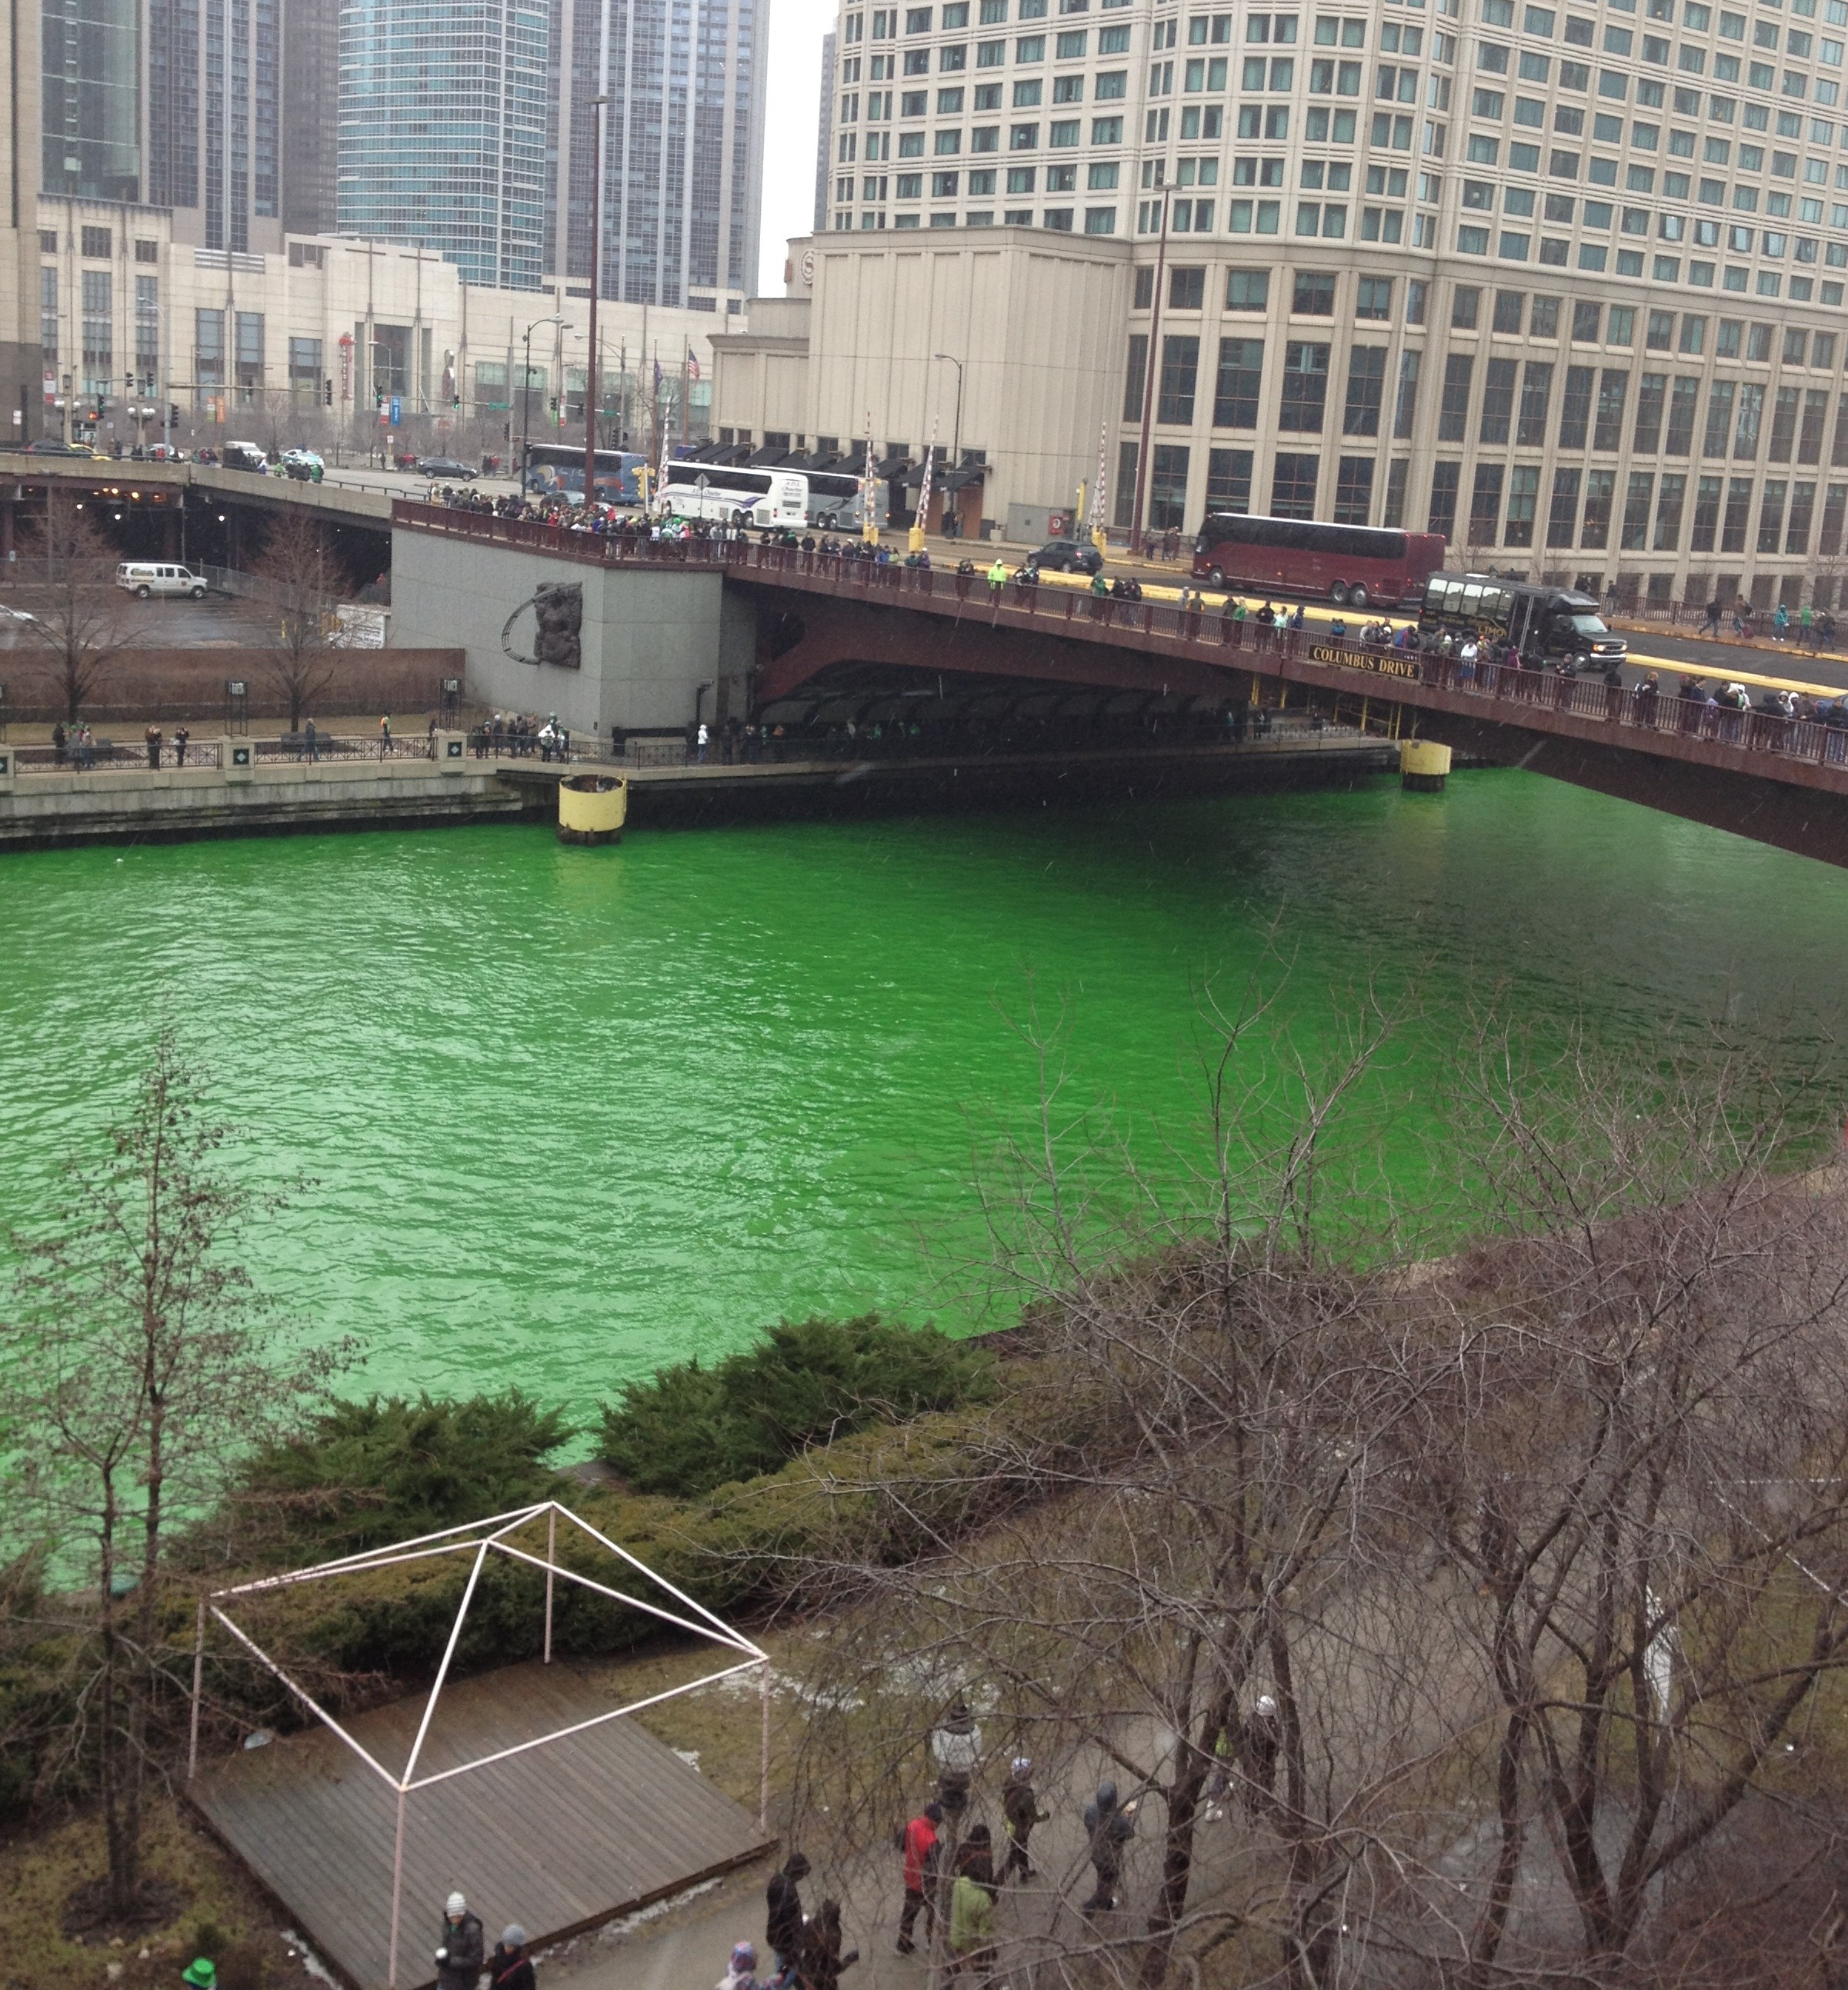 While Michiganians celebrated St. Patrick's Day, Chicago residents took part in a longtime tradition. Thousands of people turned out last weekend to see the Chicago River dyed green to start off the holiday celebration. PHOTO/BRIANNA BUDNY